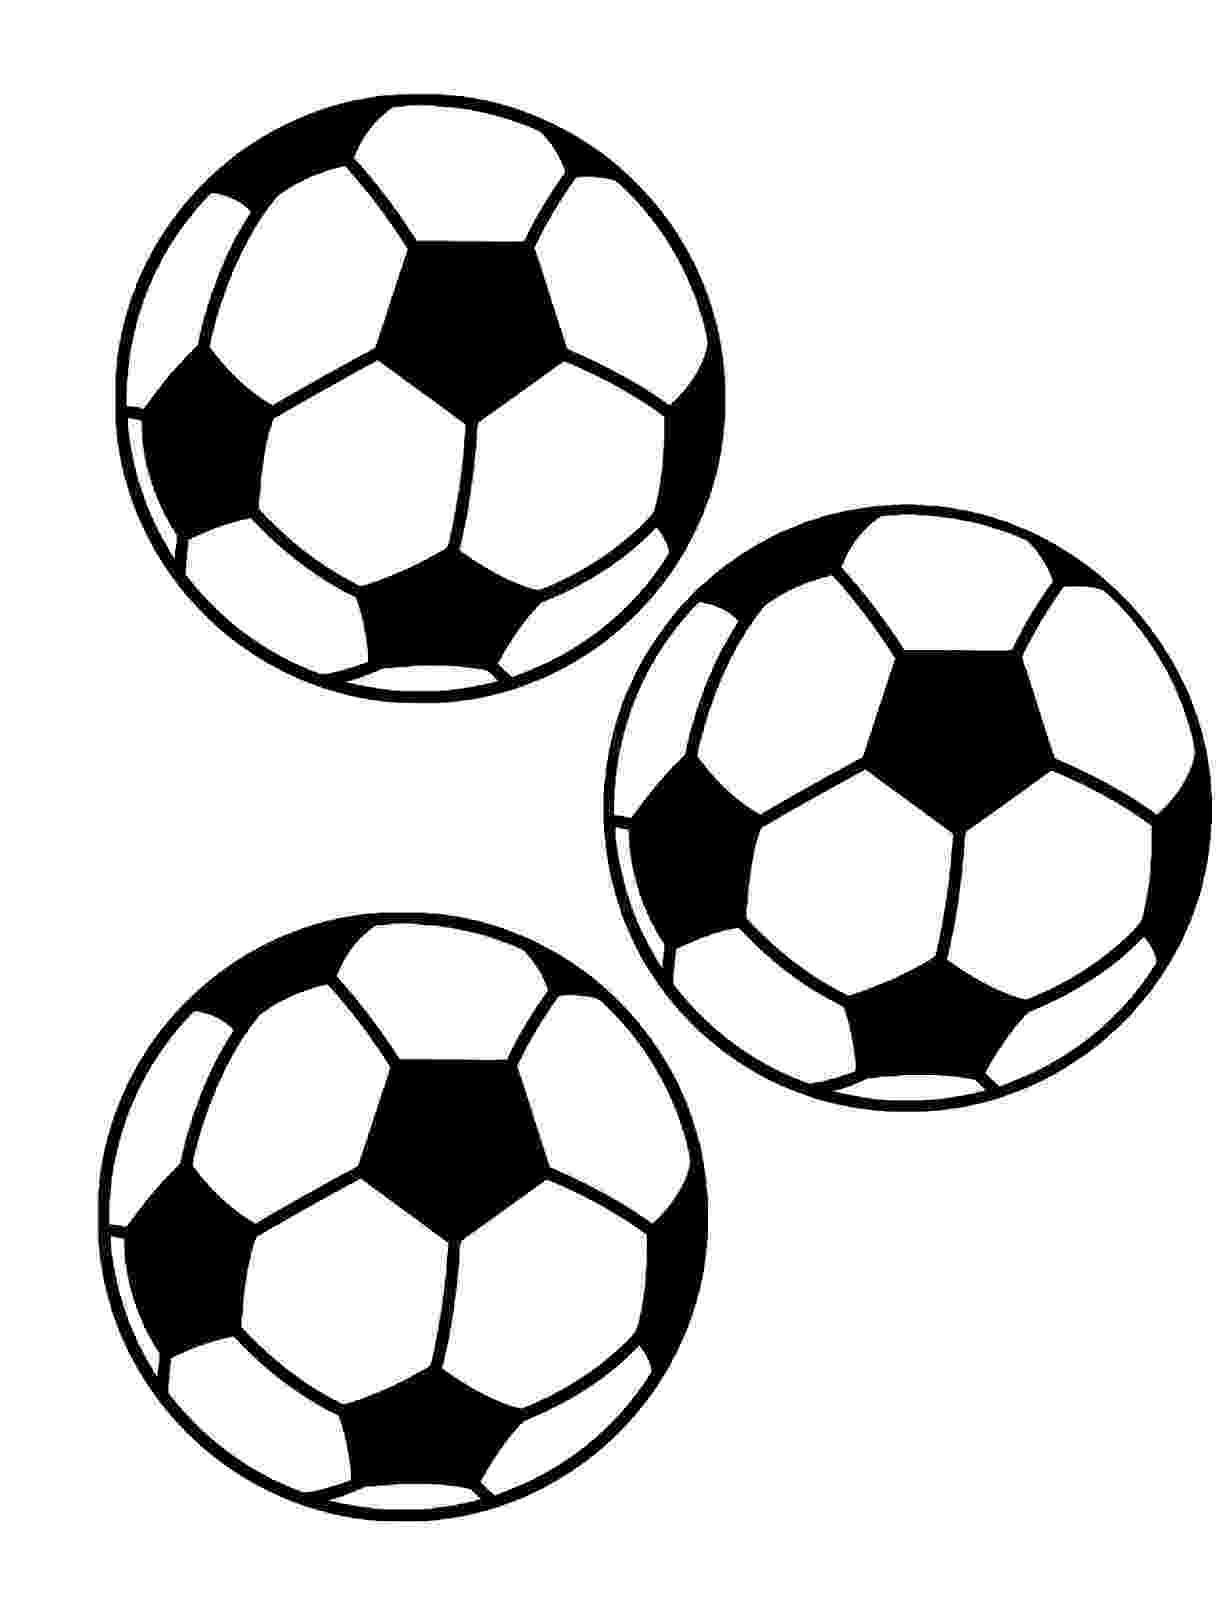 soccer colouring pages free printable printable soccer coloring pages coloring home colouring pages free soccer printable